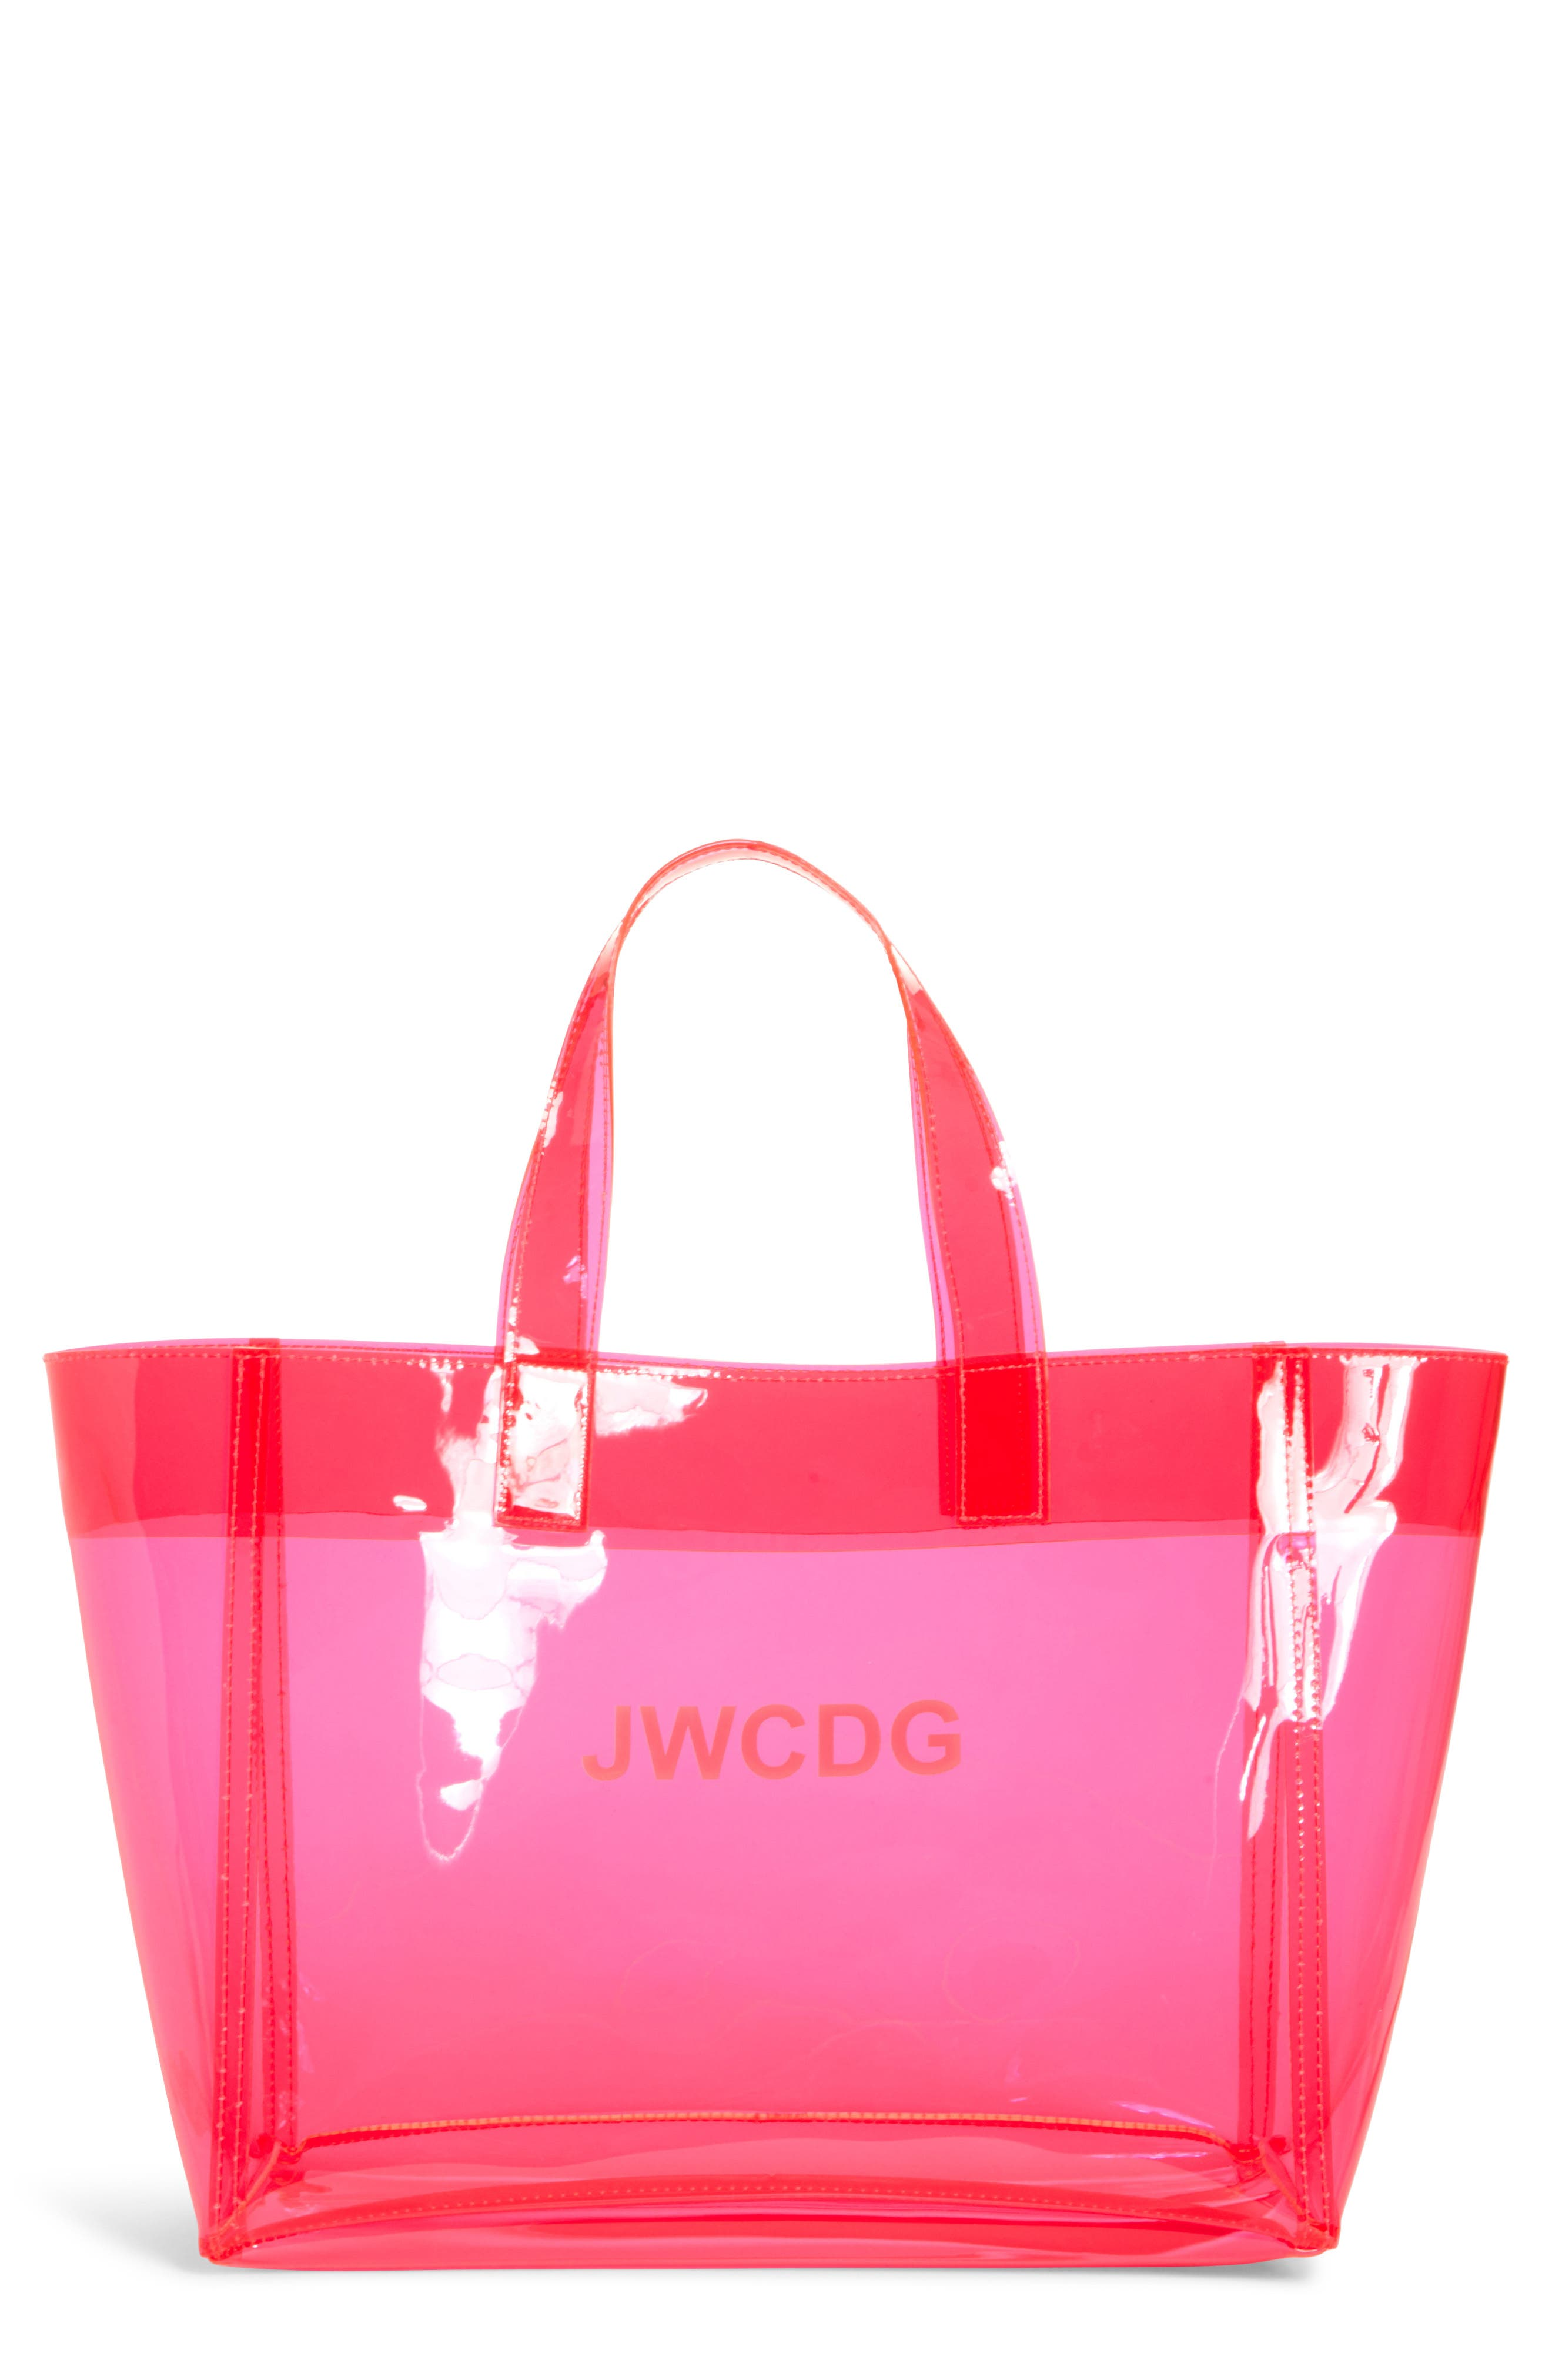 JUNYA WATANABE, Small Transparent Tote, Main thumbnail 1, color, PINK